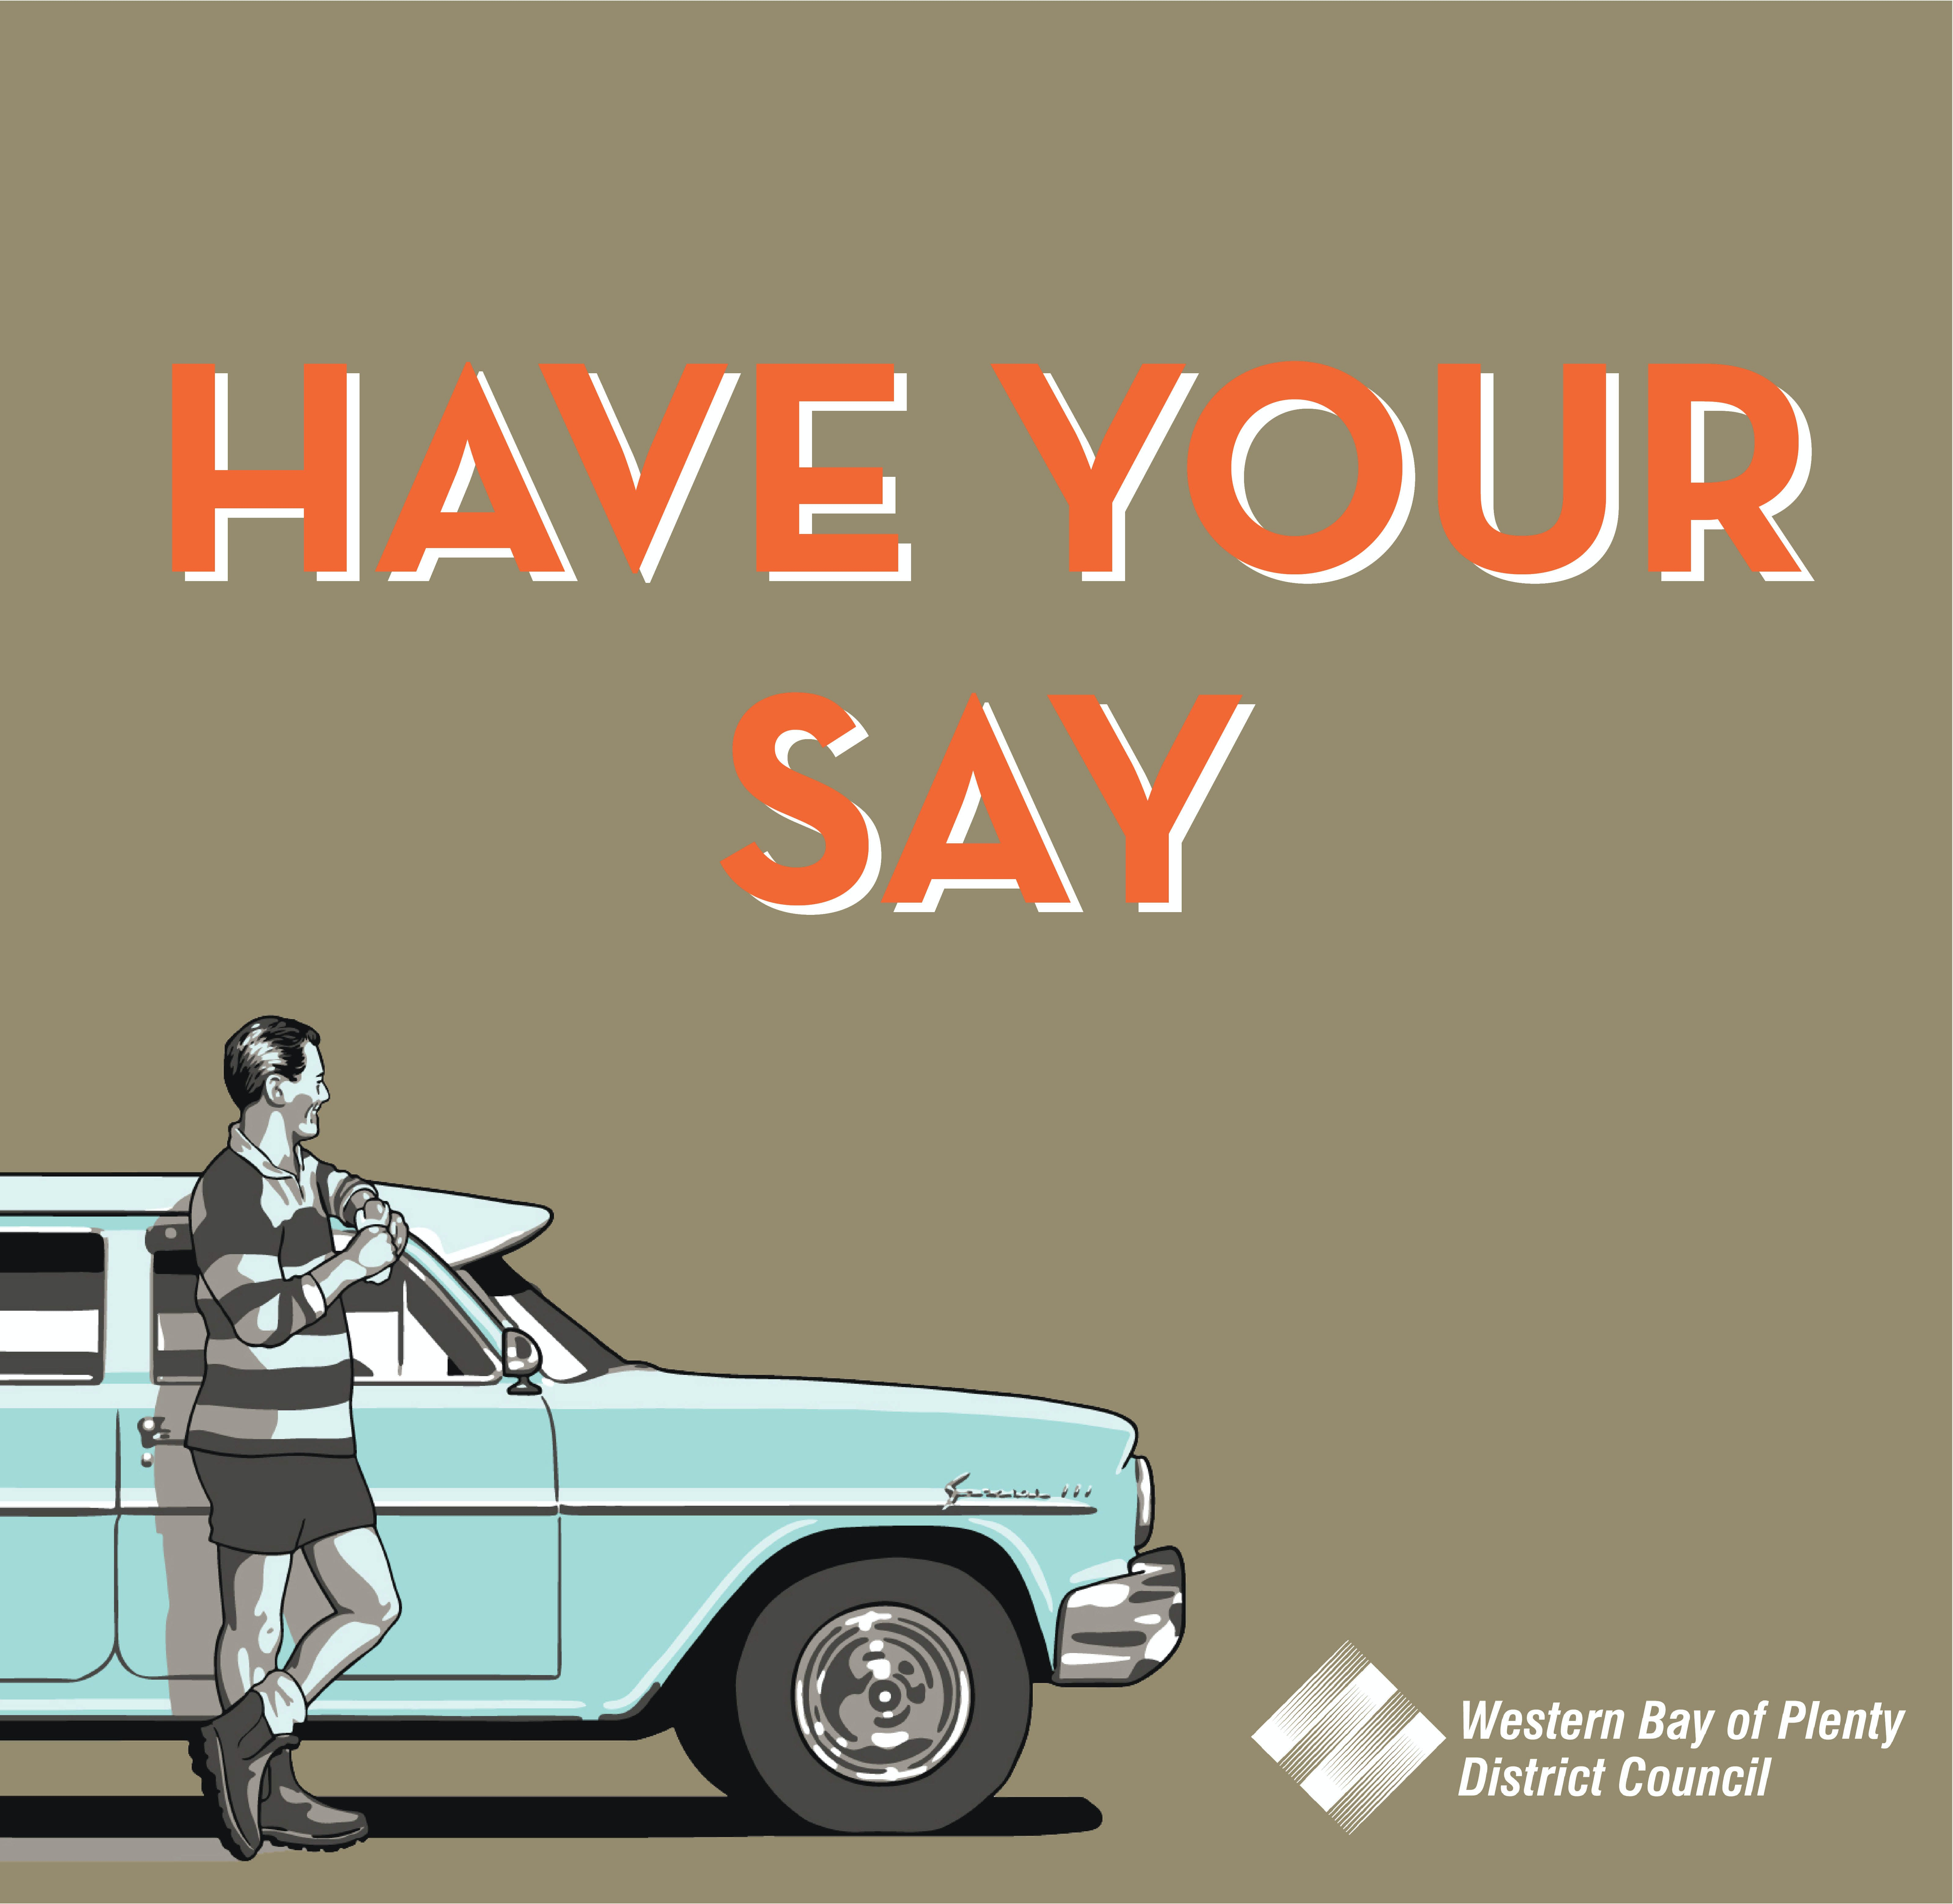 New have your say image 2